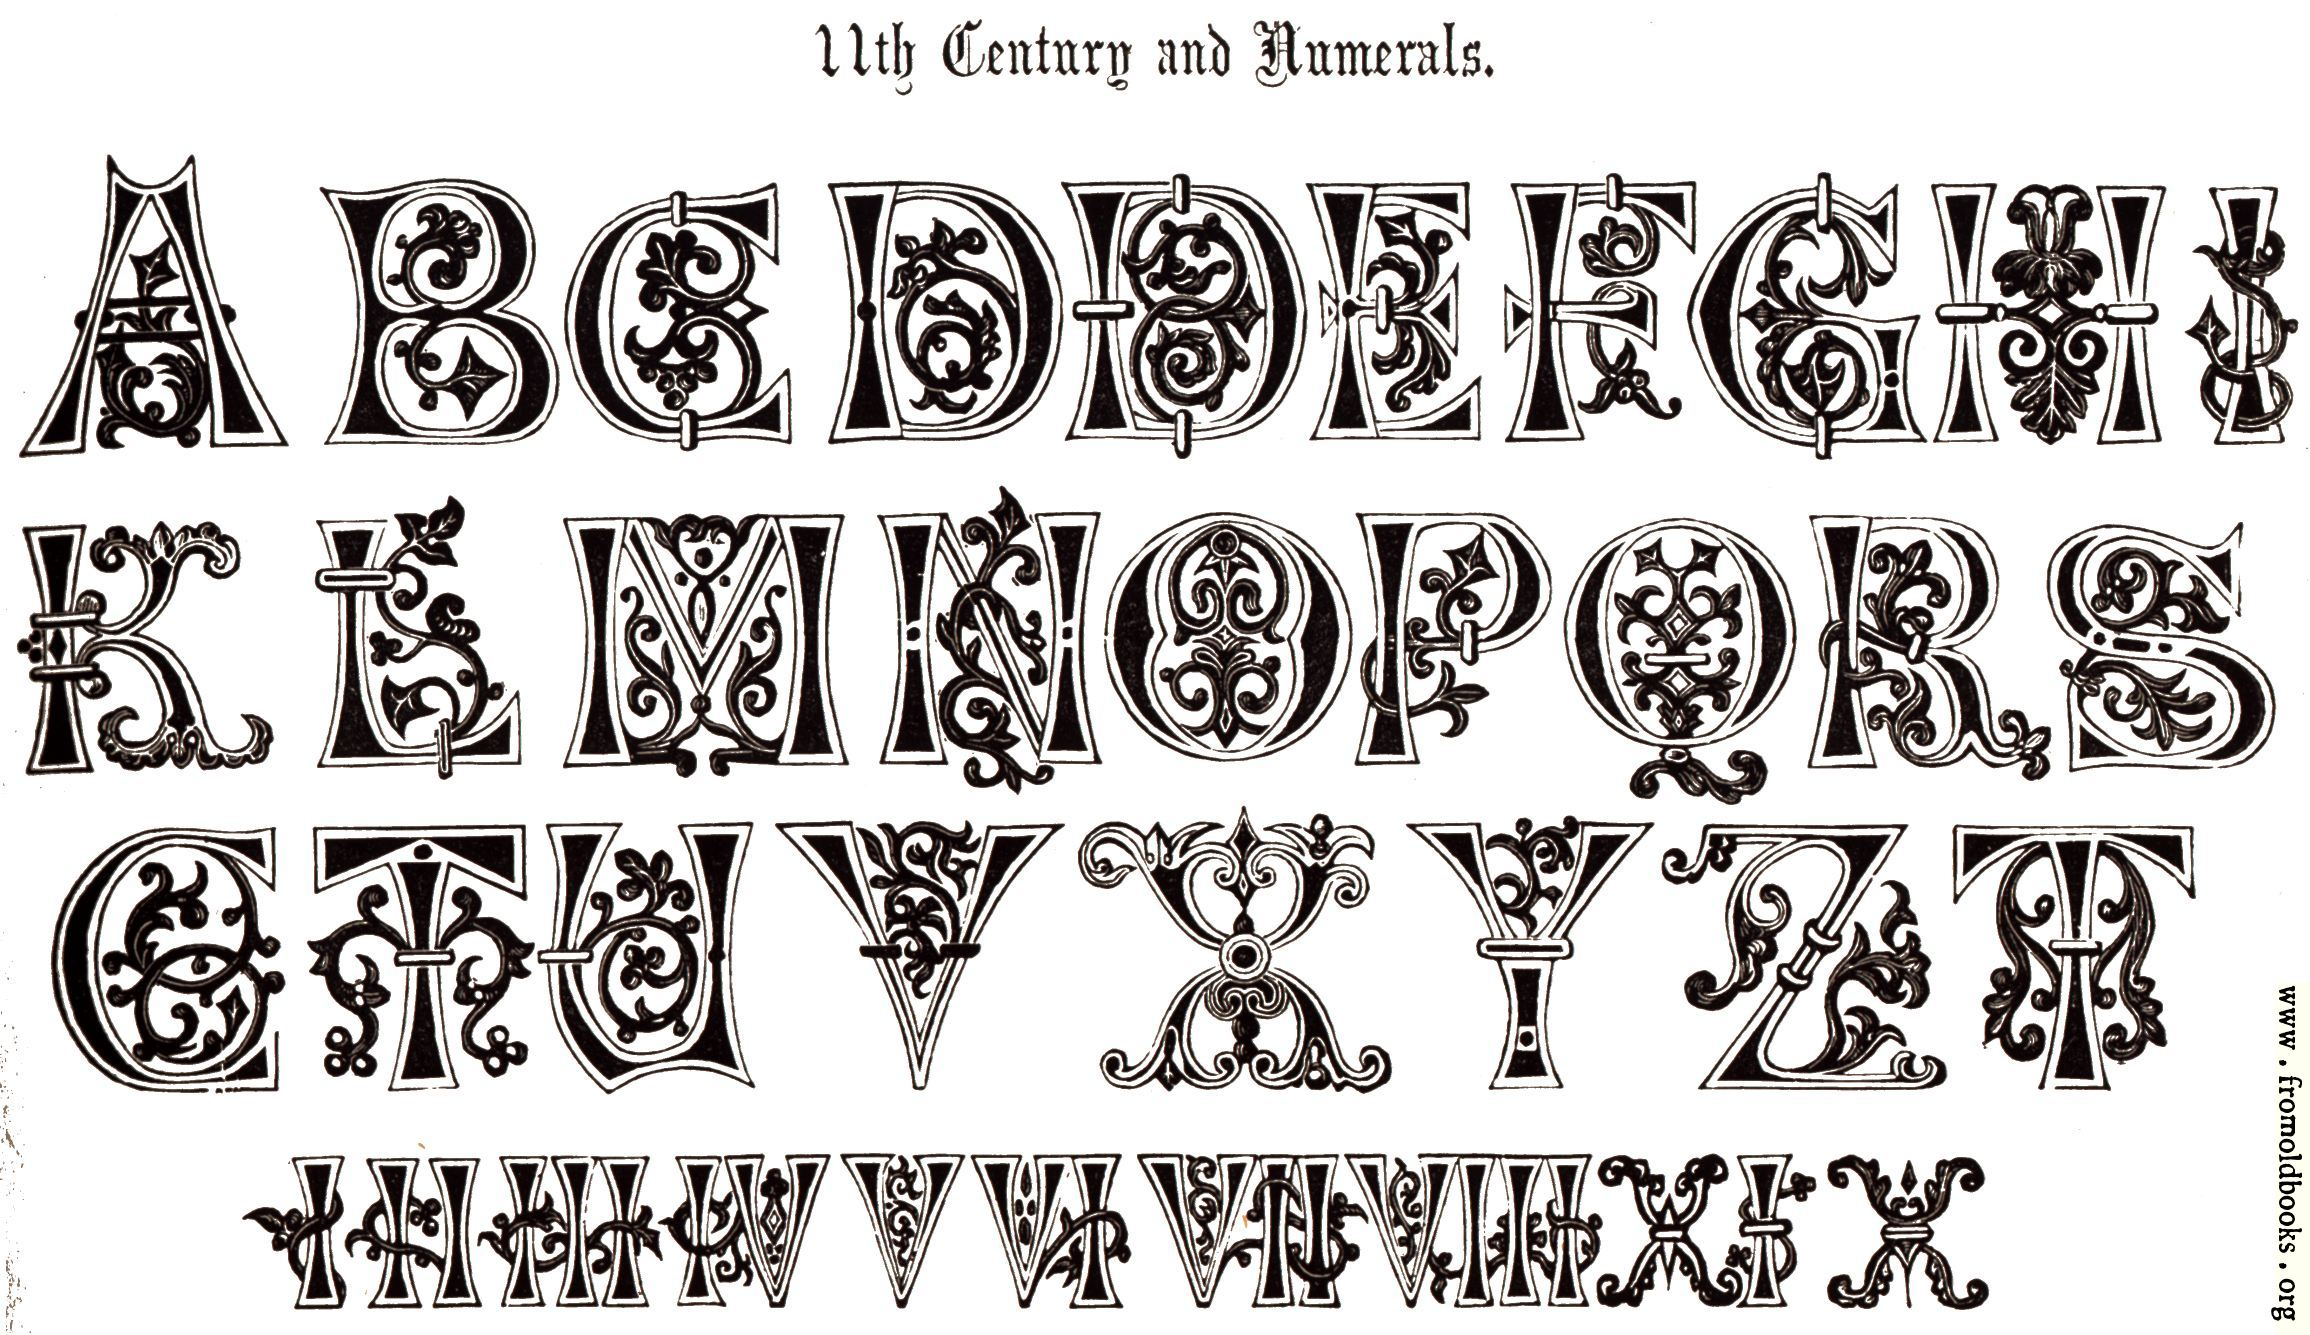 07. 7.—11th Century and Numerals